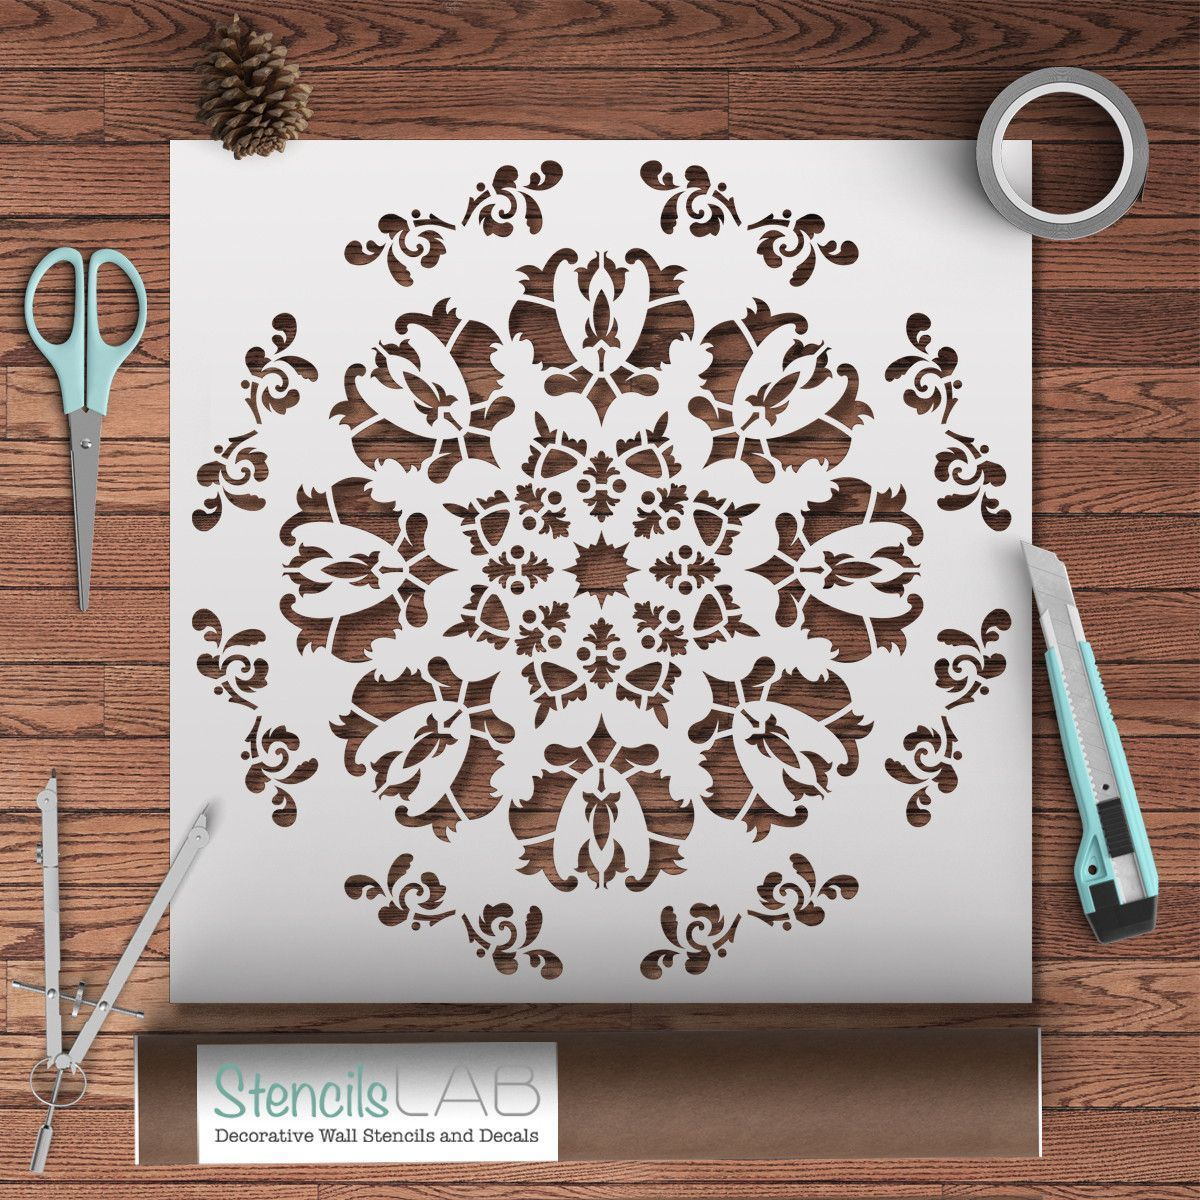 Decorative Wall Stencils floral medallion large: reusable wall stencils - decorative